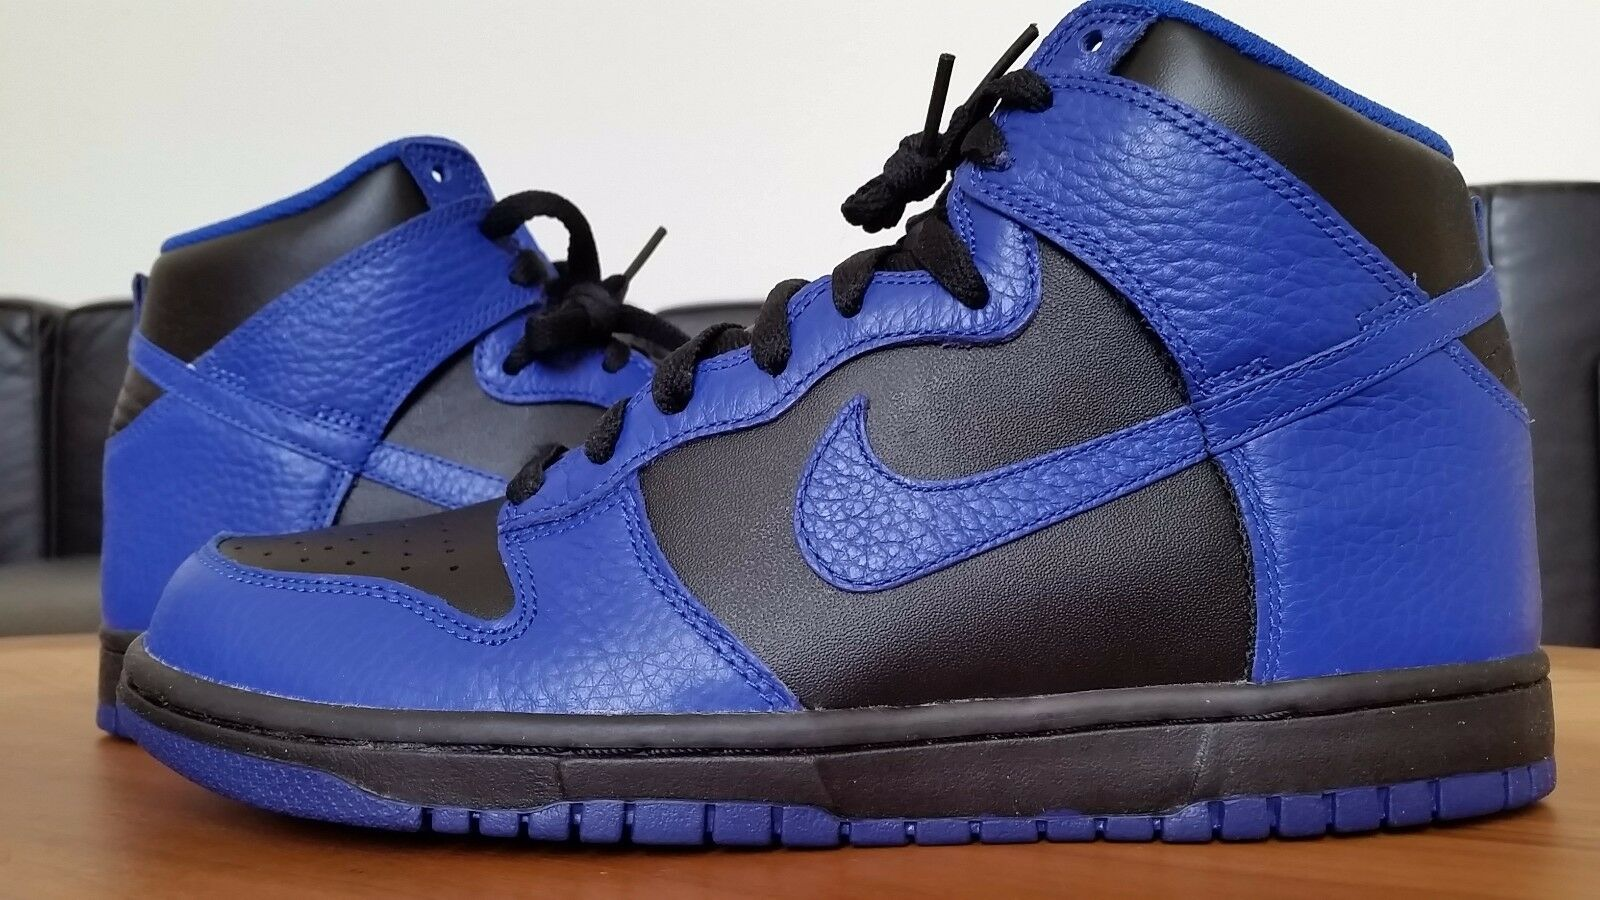 DS 2012 Nike Dunk High  Cheap and fashionable